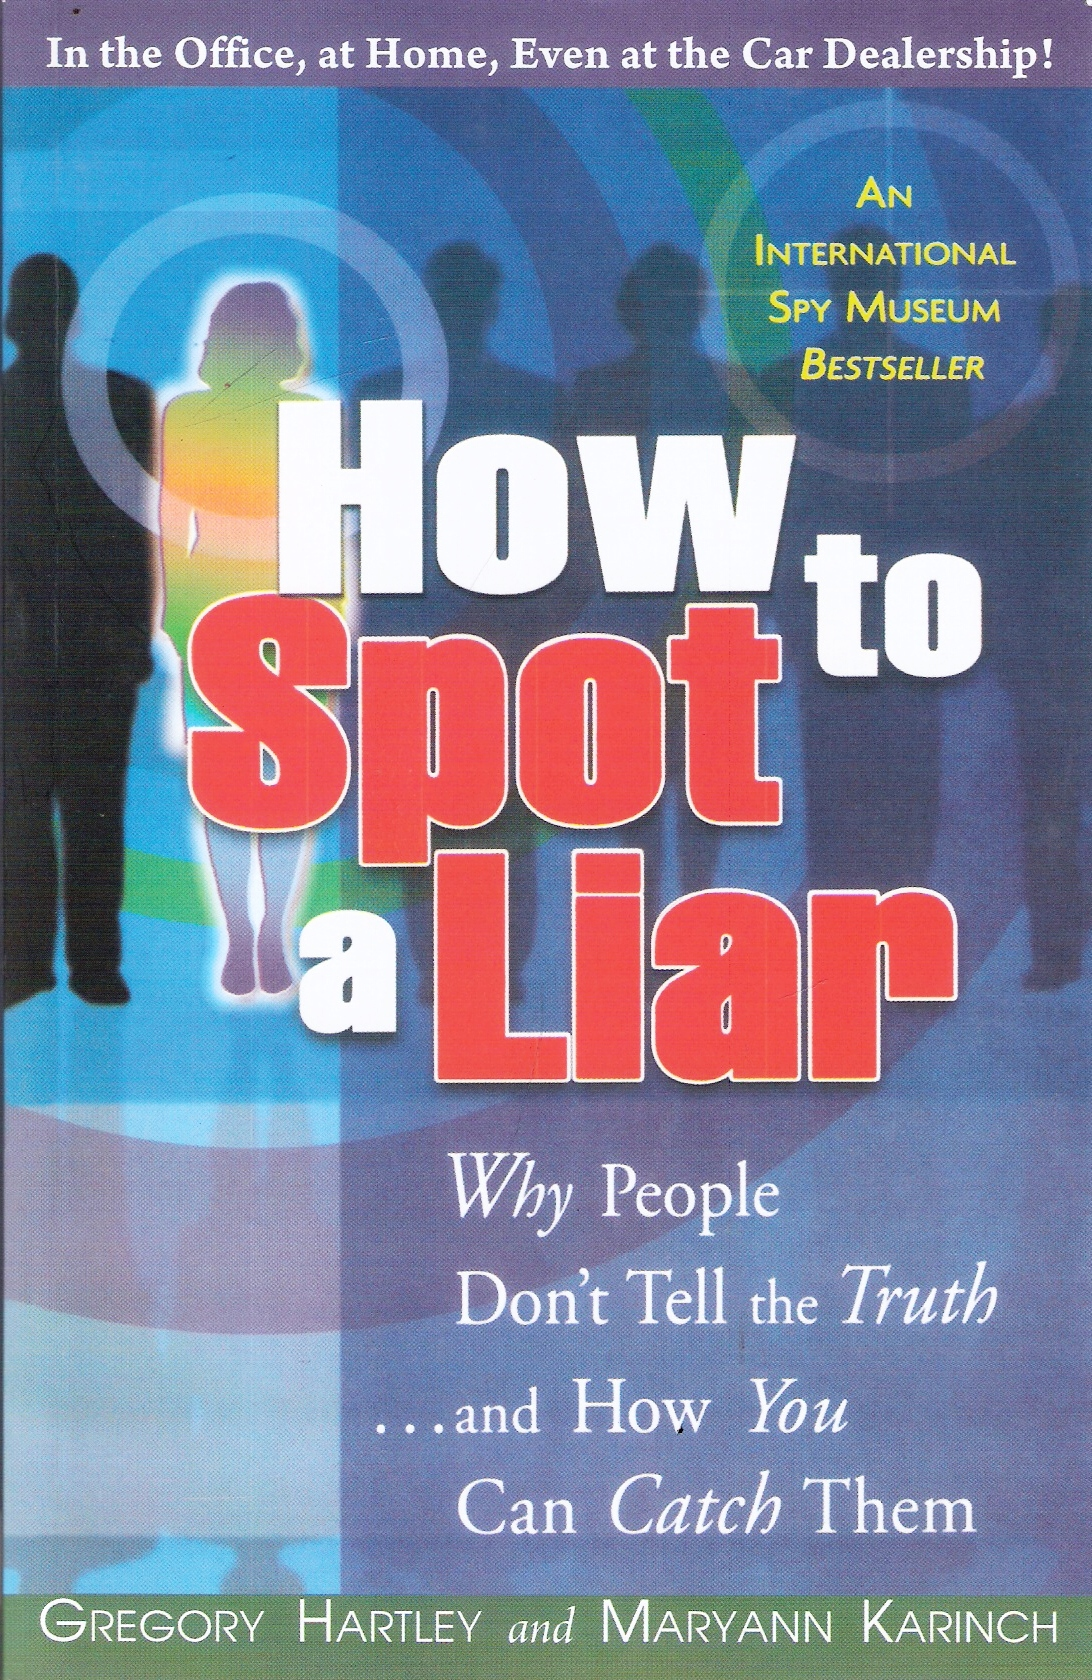 How to tell the truth